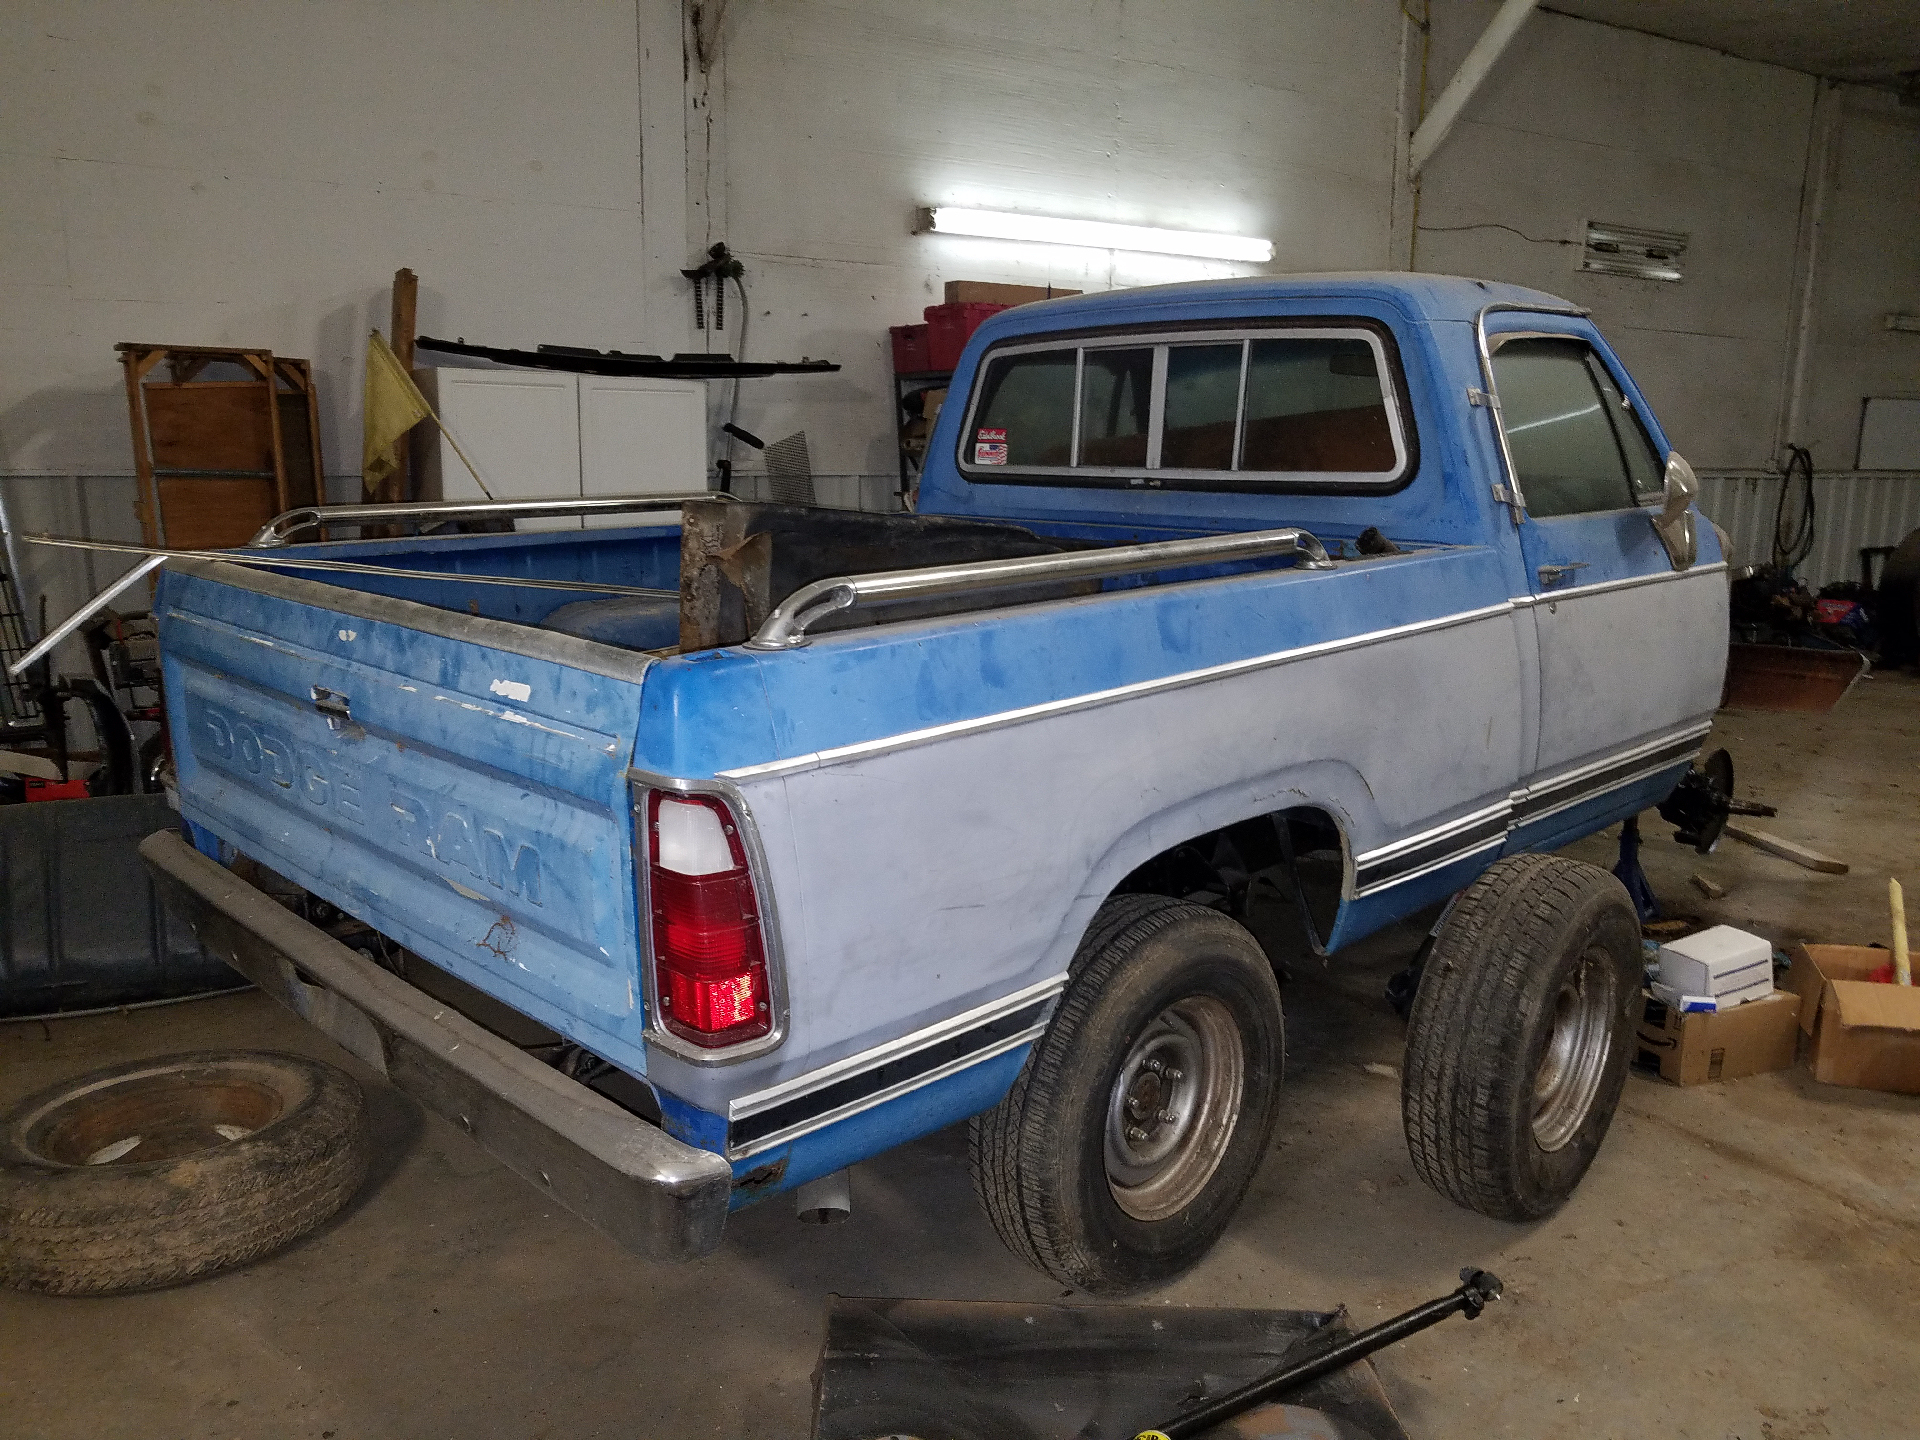 1980 Dodge Short Bed Power Wagon Truck Parts Here Is How The Was When I Came Across It Axles And Transfercase Are Being Pulled Out To Be Placed In A 1979 Ramcharger